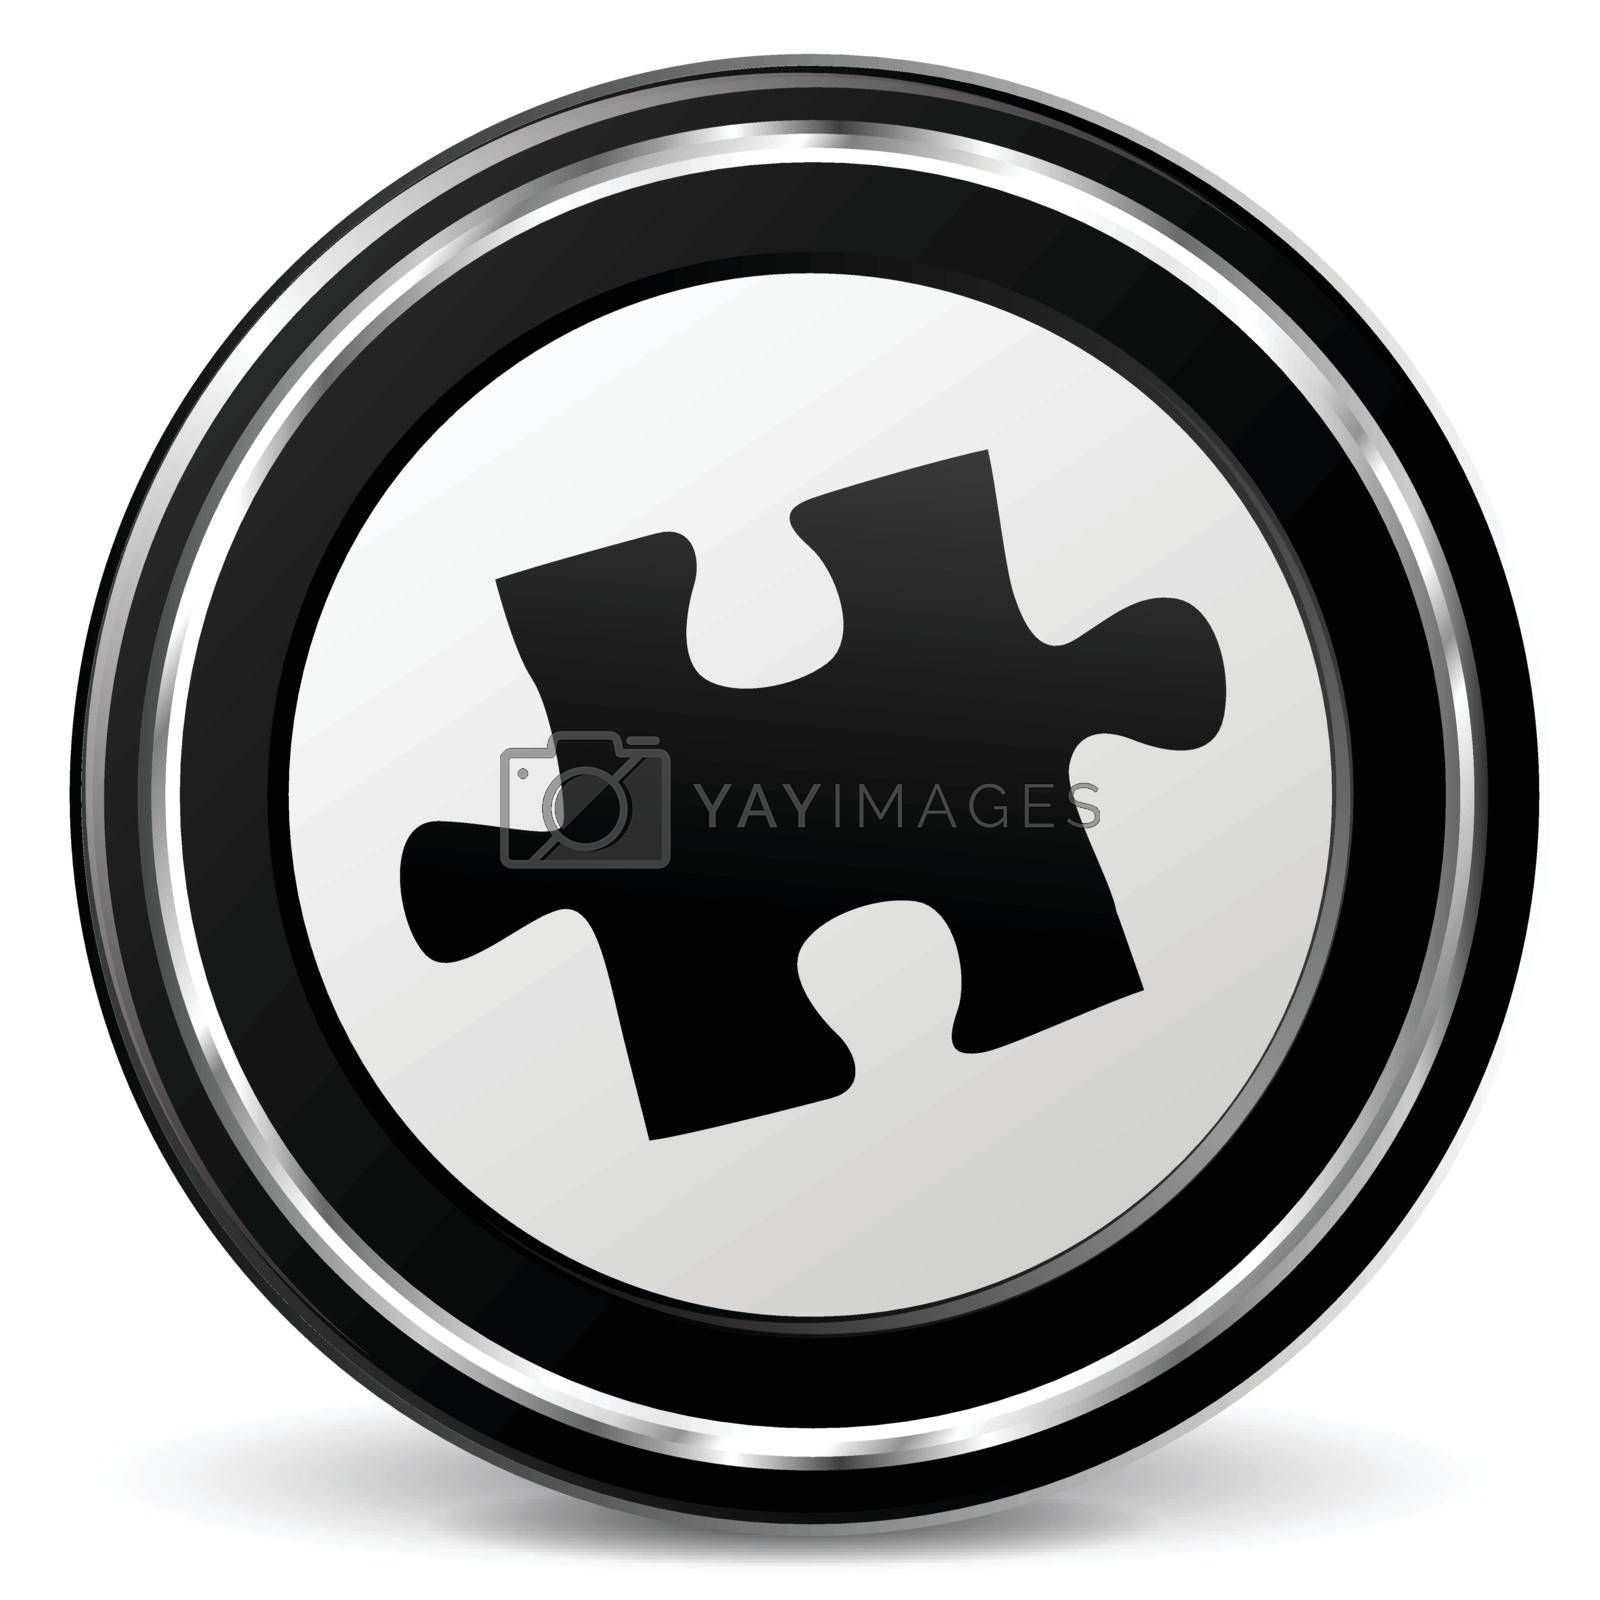 illustration of puzzle piece black and silver icon